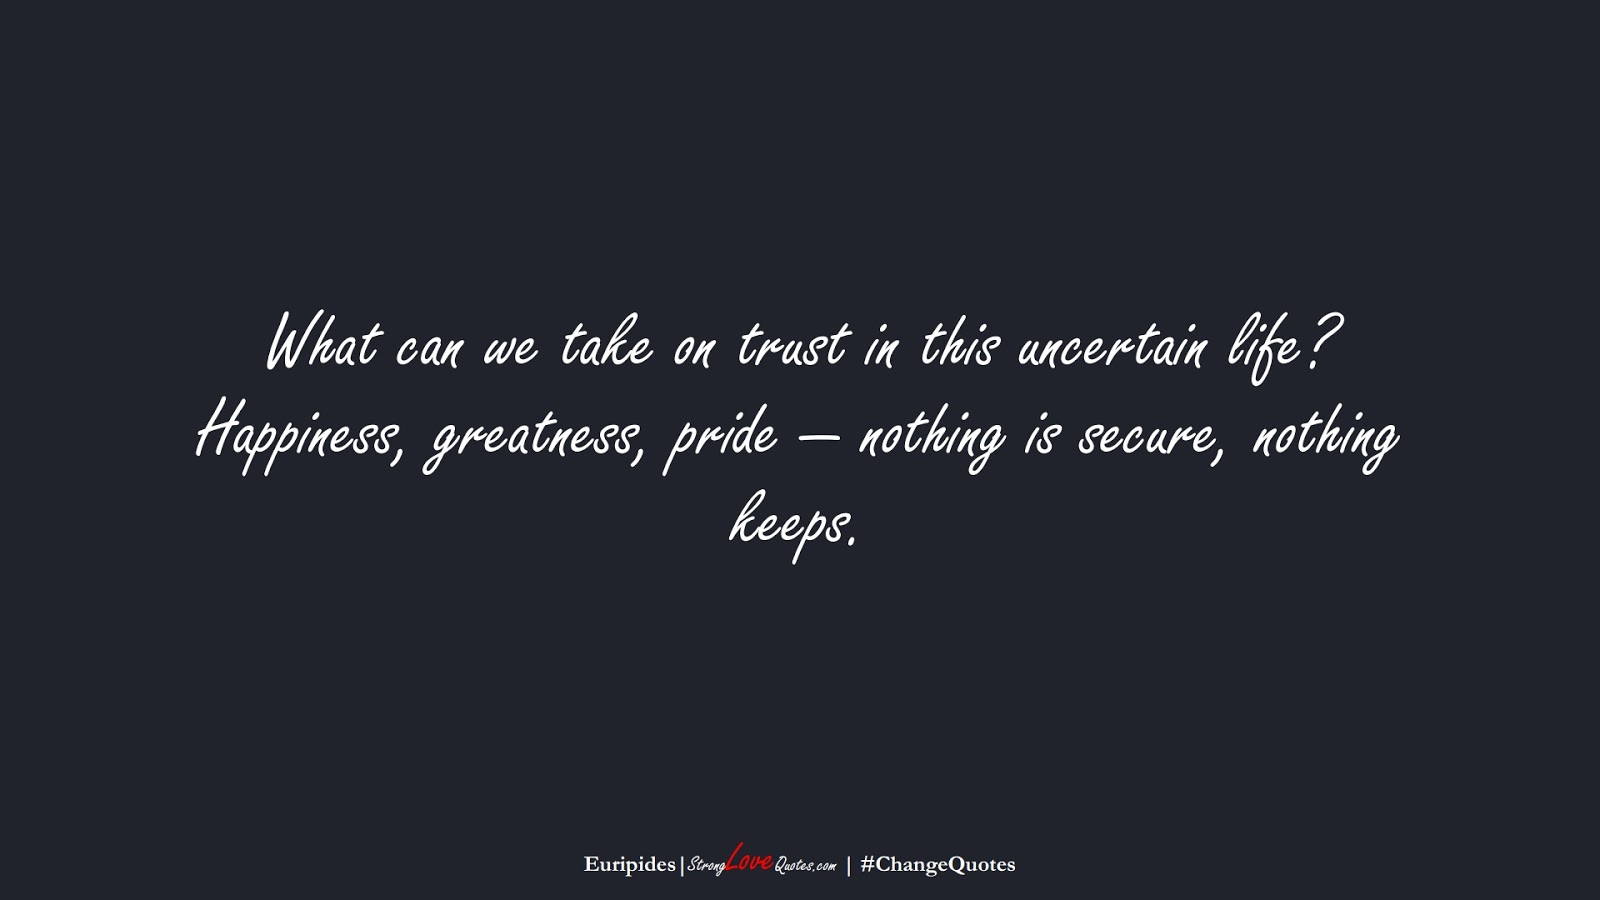 What can we take on trust in this uncertain life? Happiness, greatness, pride — nothing is secure, nothing keeps. (Euripides);  #ChangeQuotes